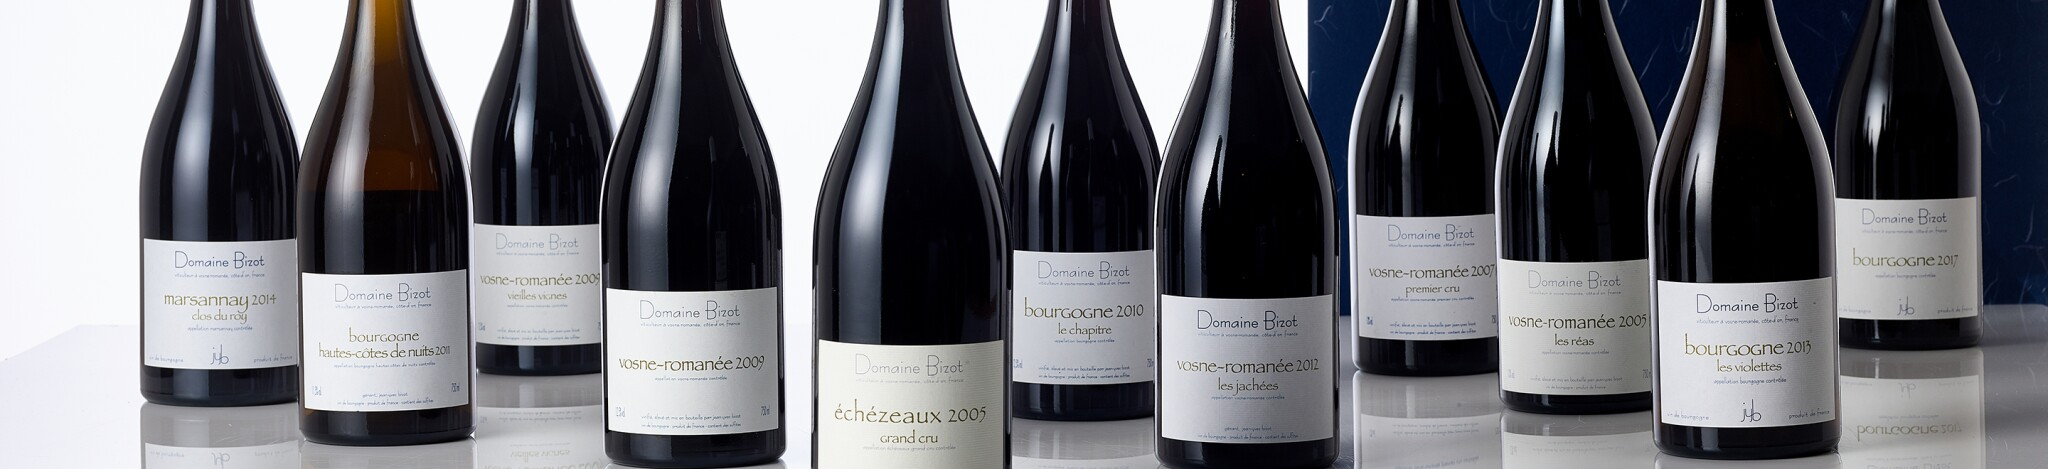 Vine | A Breathtaking Collection of Domaine Bizot + More